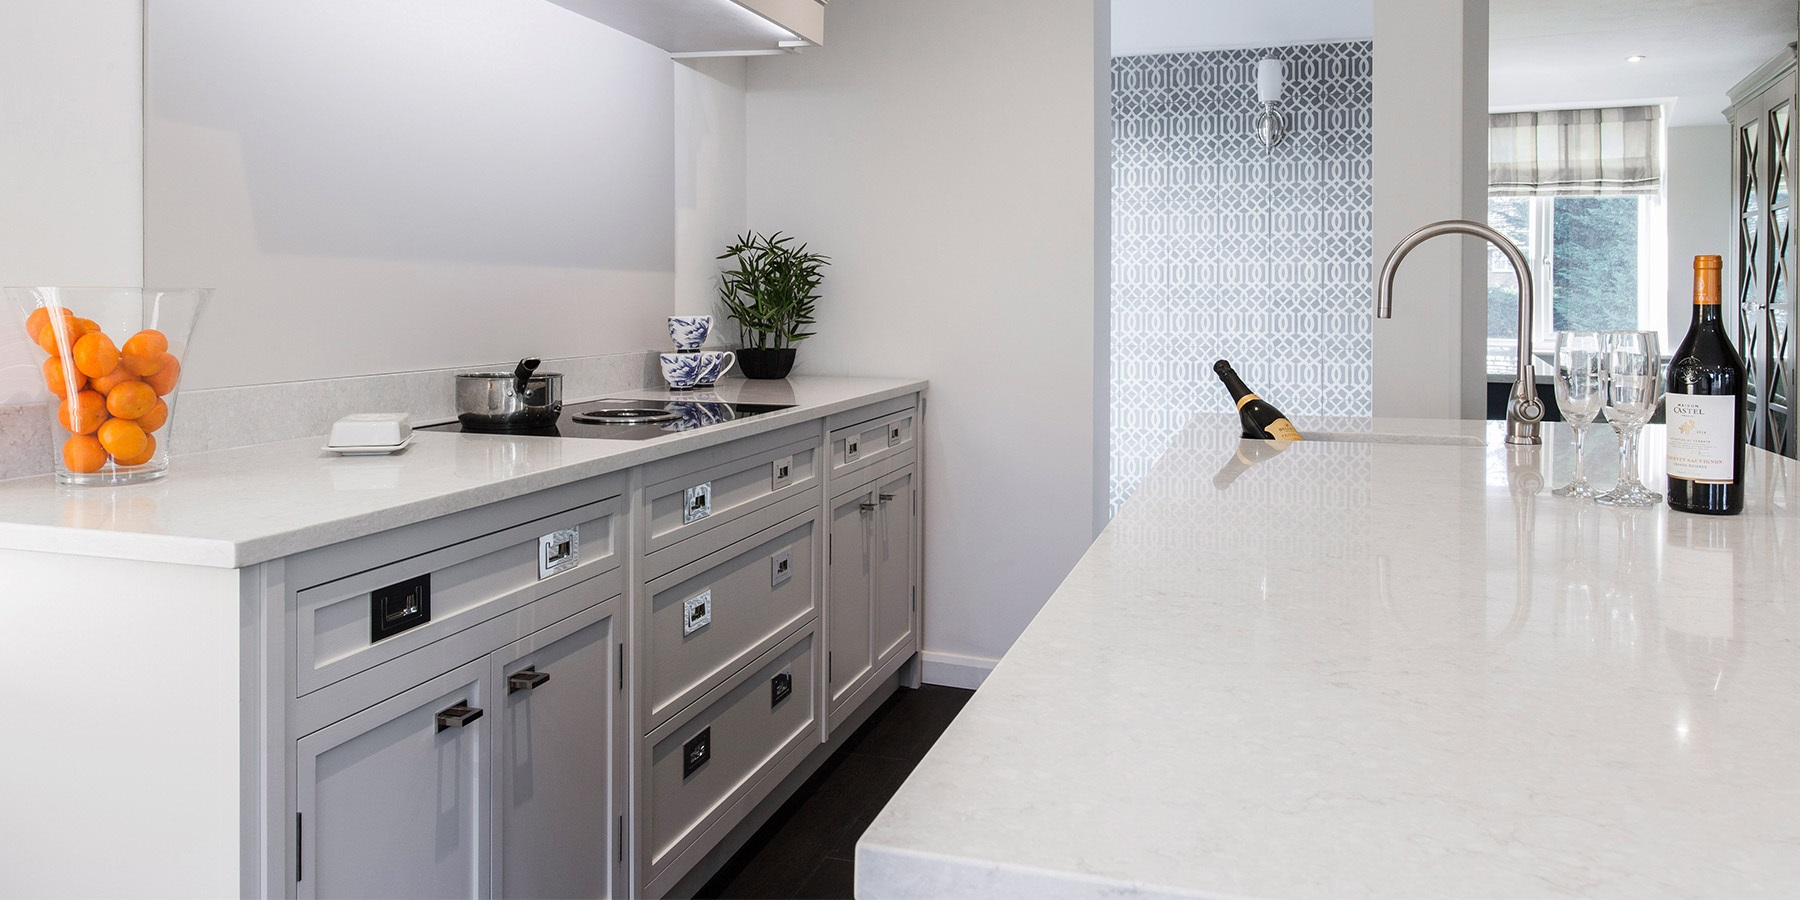 Burlanes Interiors - Contemporary Shaker Kitchens: Decolane